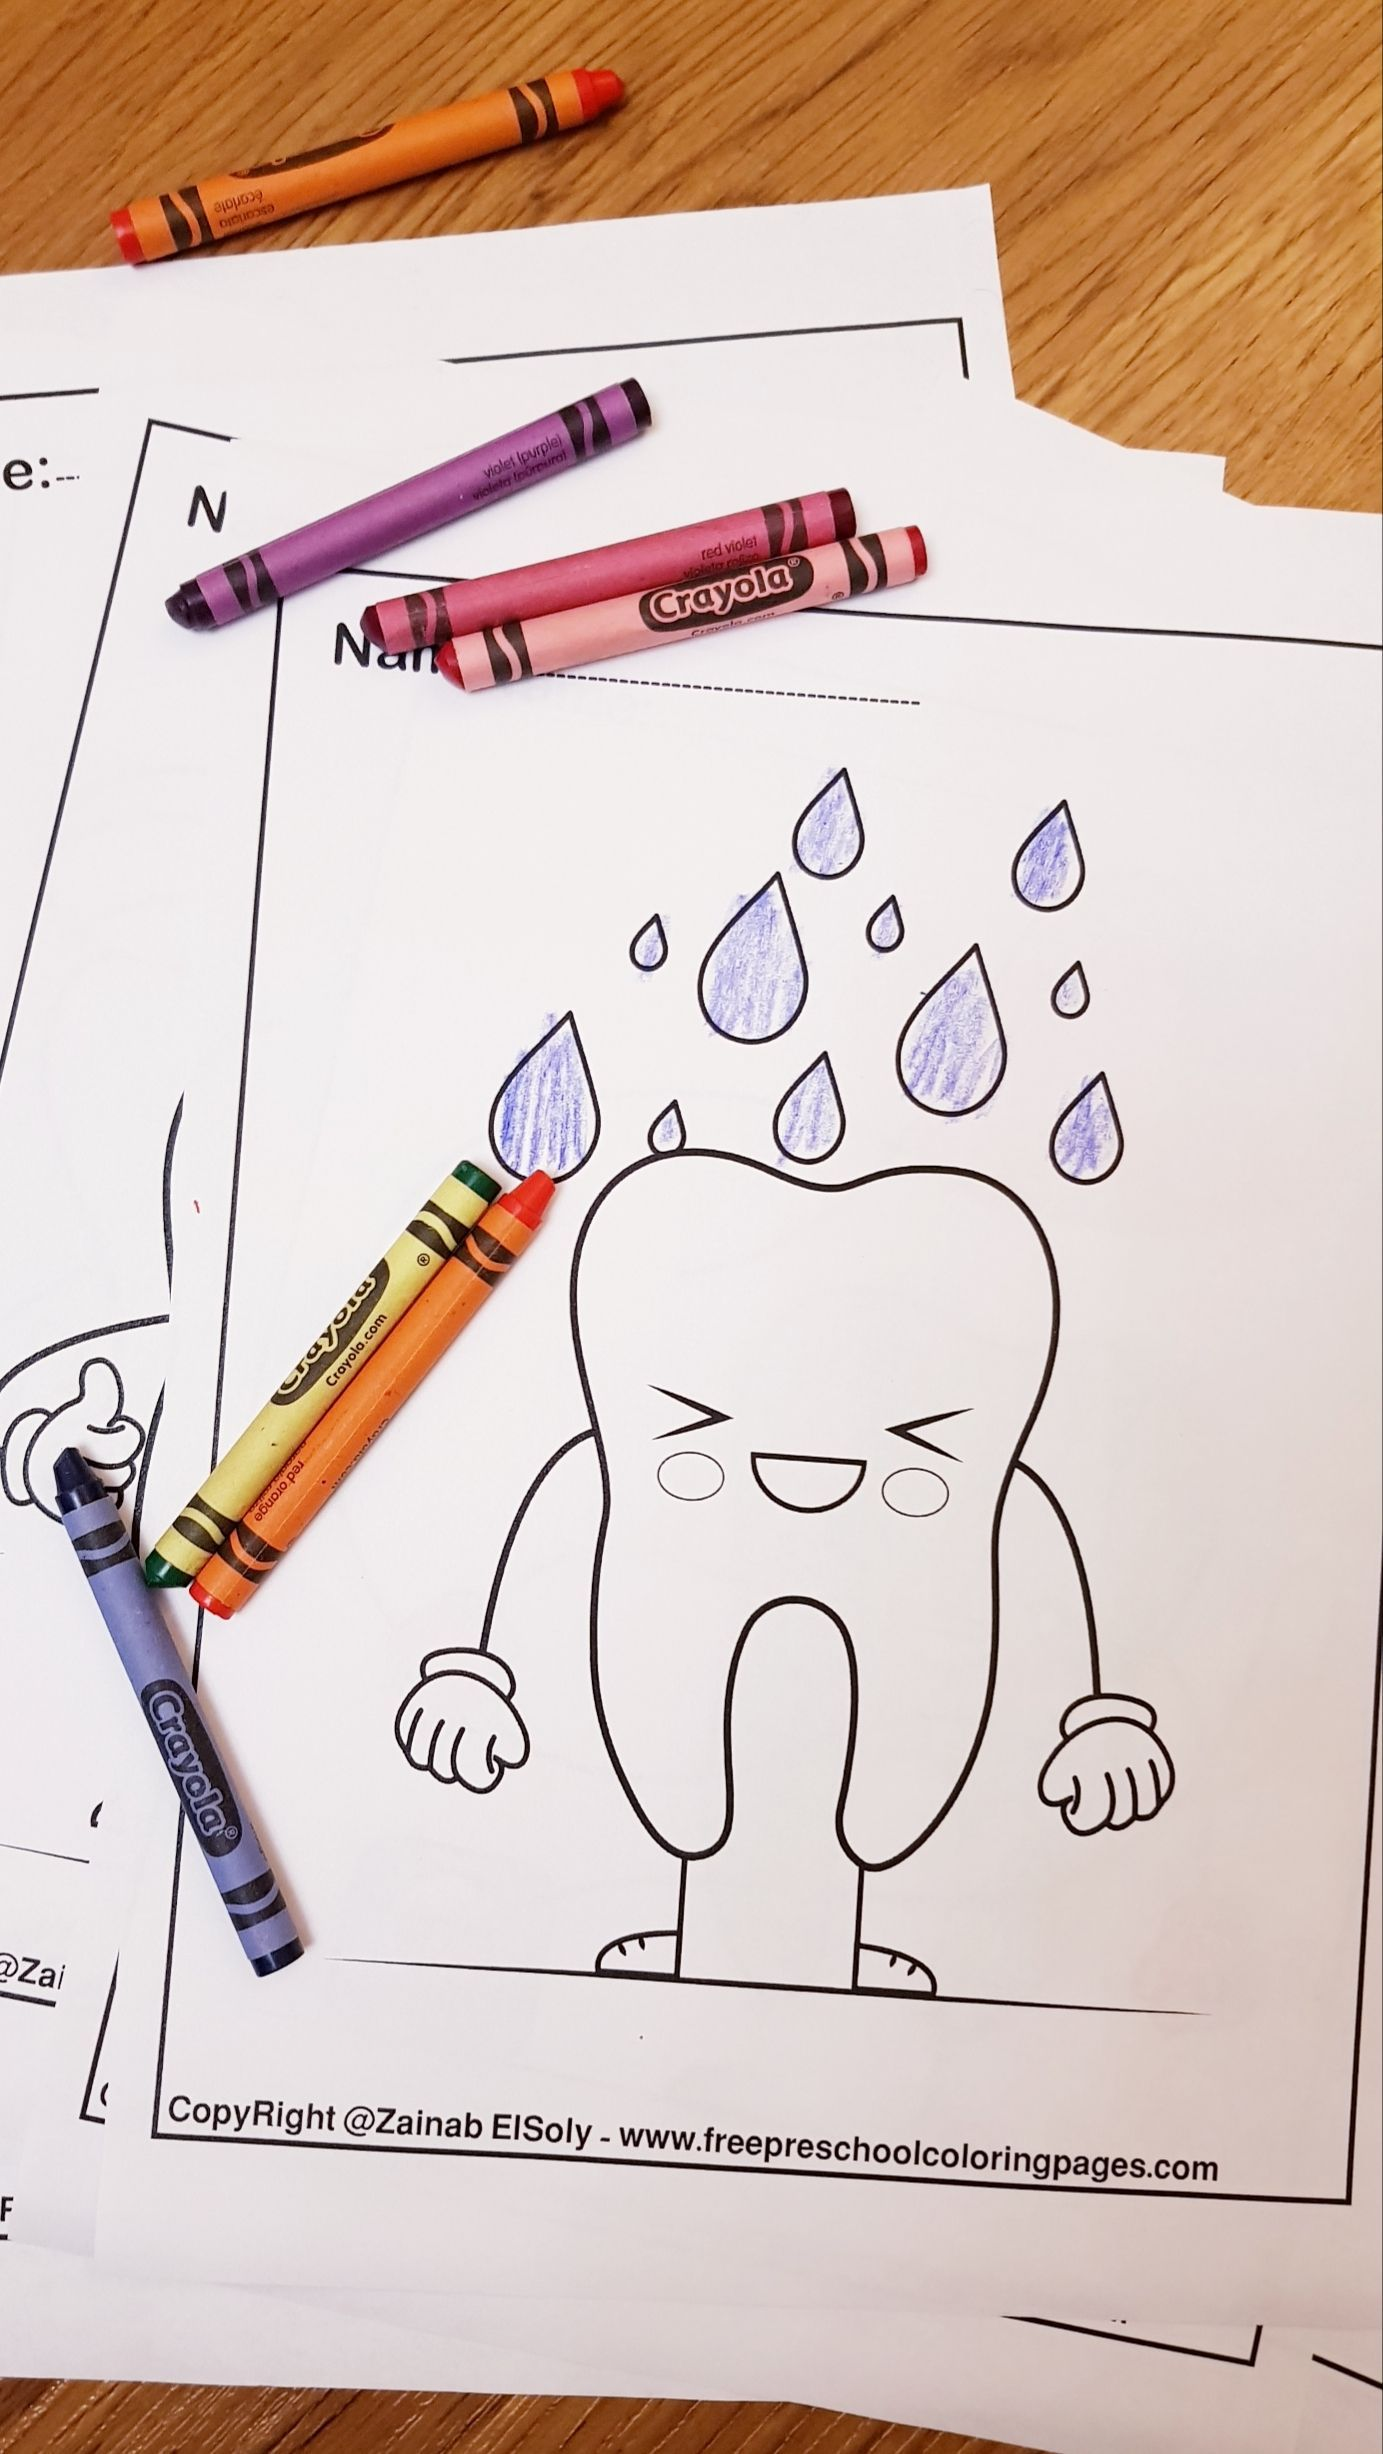 Phenomenal Dental Coloring Pages Printable Free Easy About Teeth ... | 2454x1383